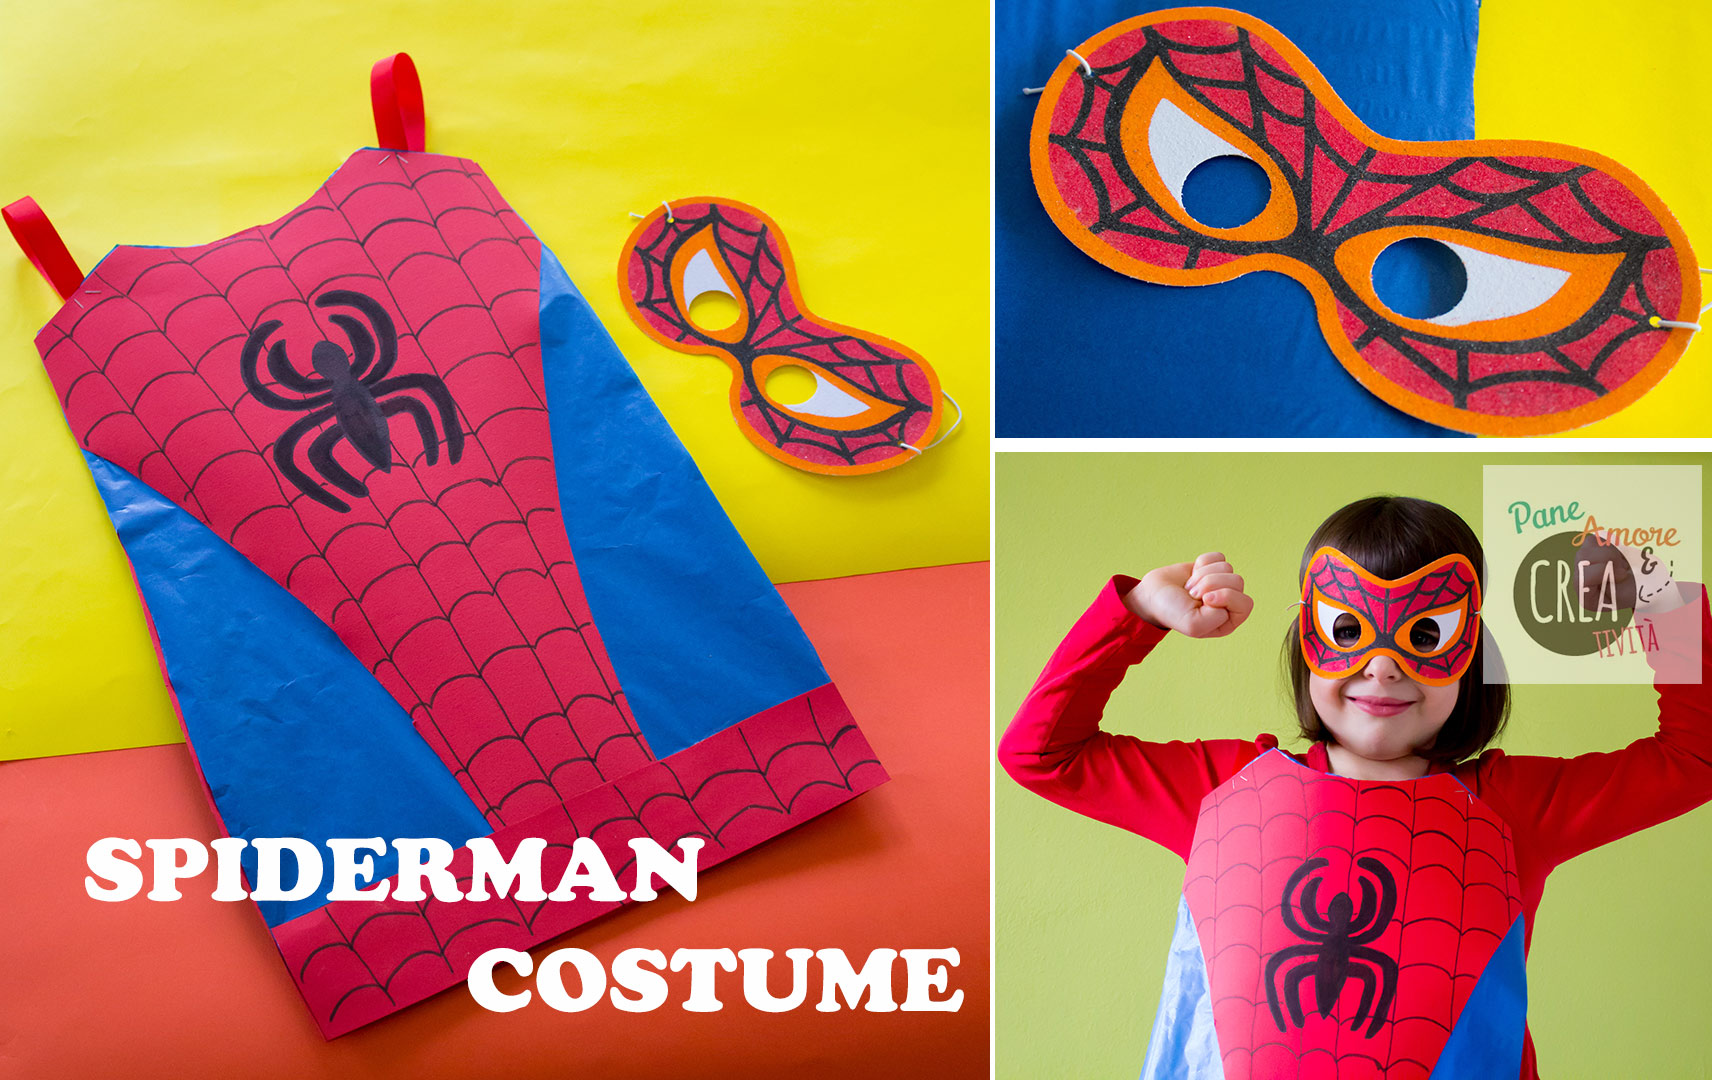 costume-da-spiderman-fai-da-te